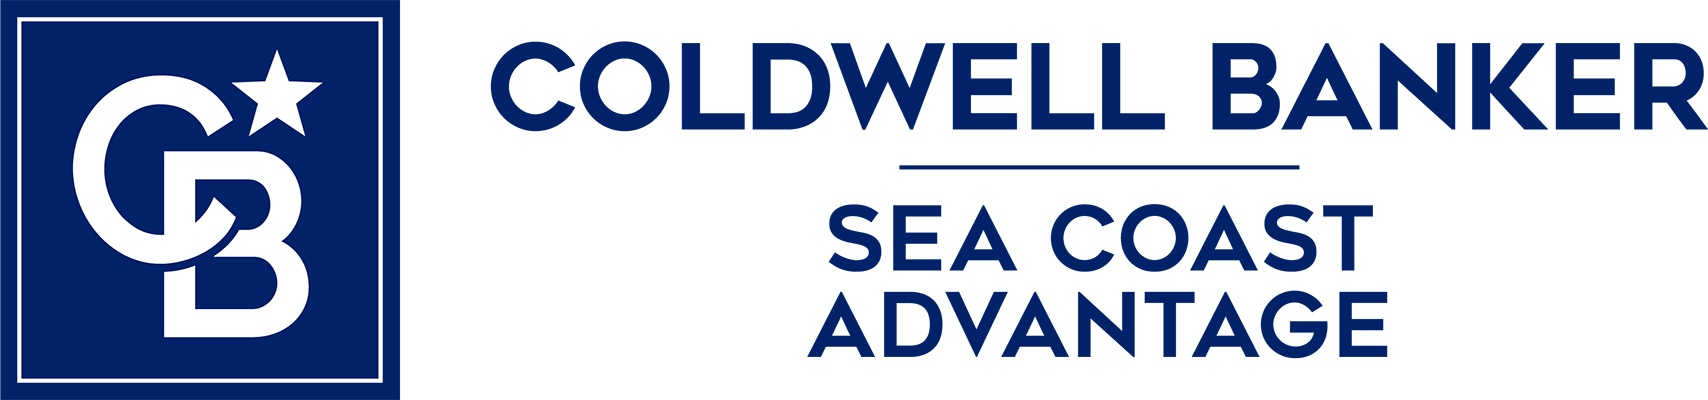 Laura Beery - Coldwell Banker Sea Coast Advantage Realty